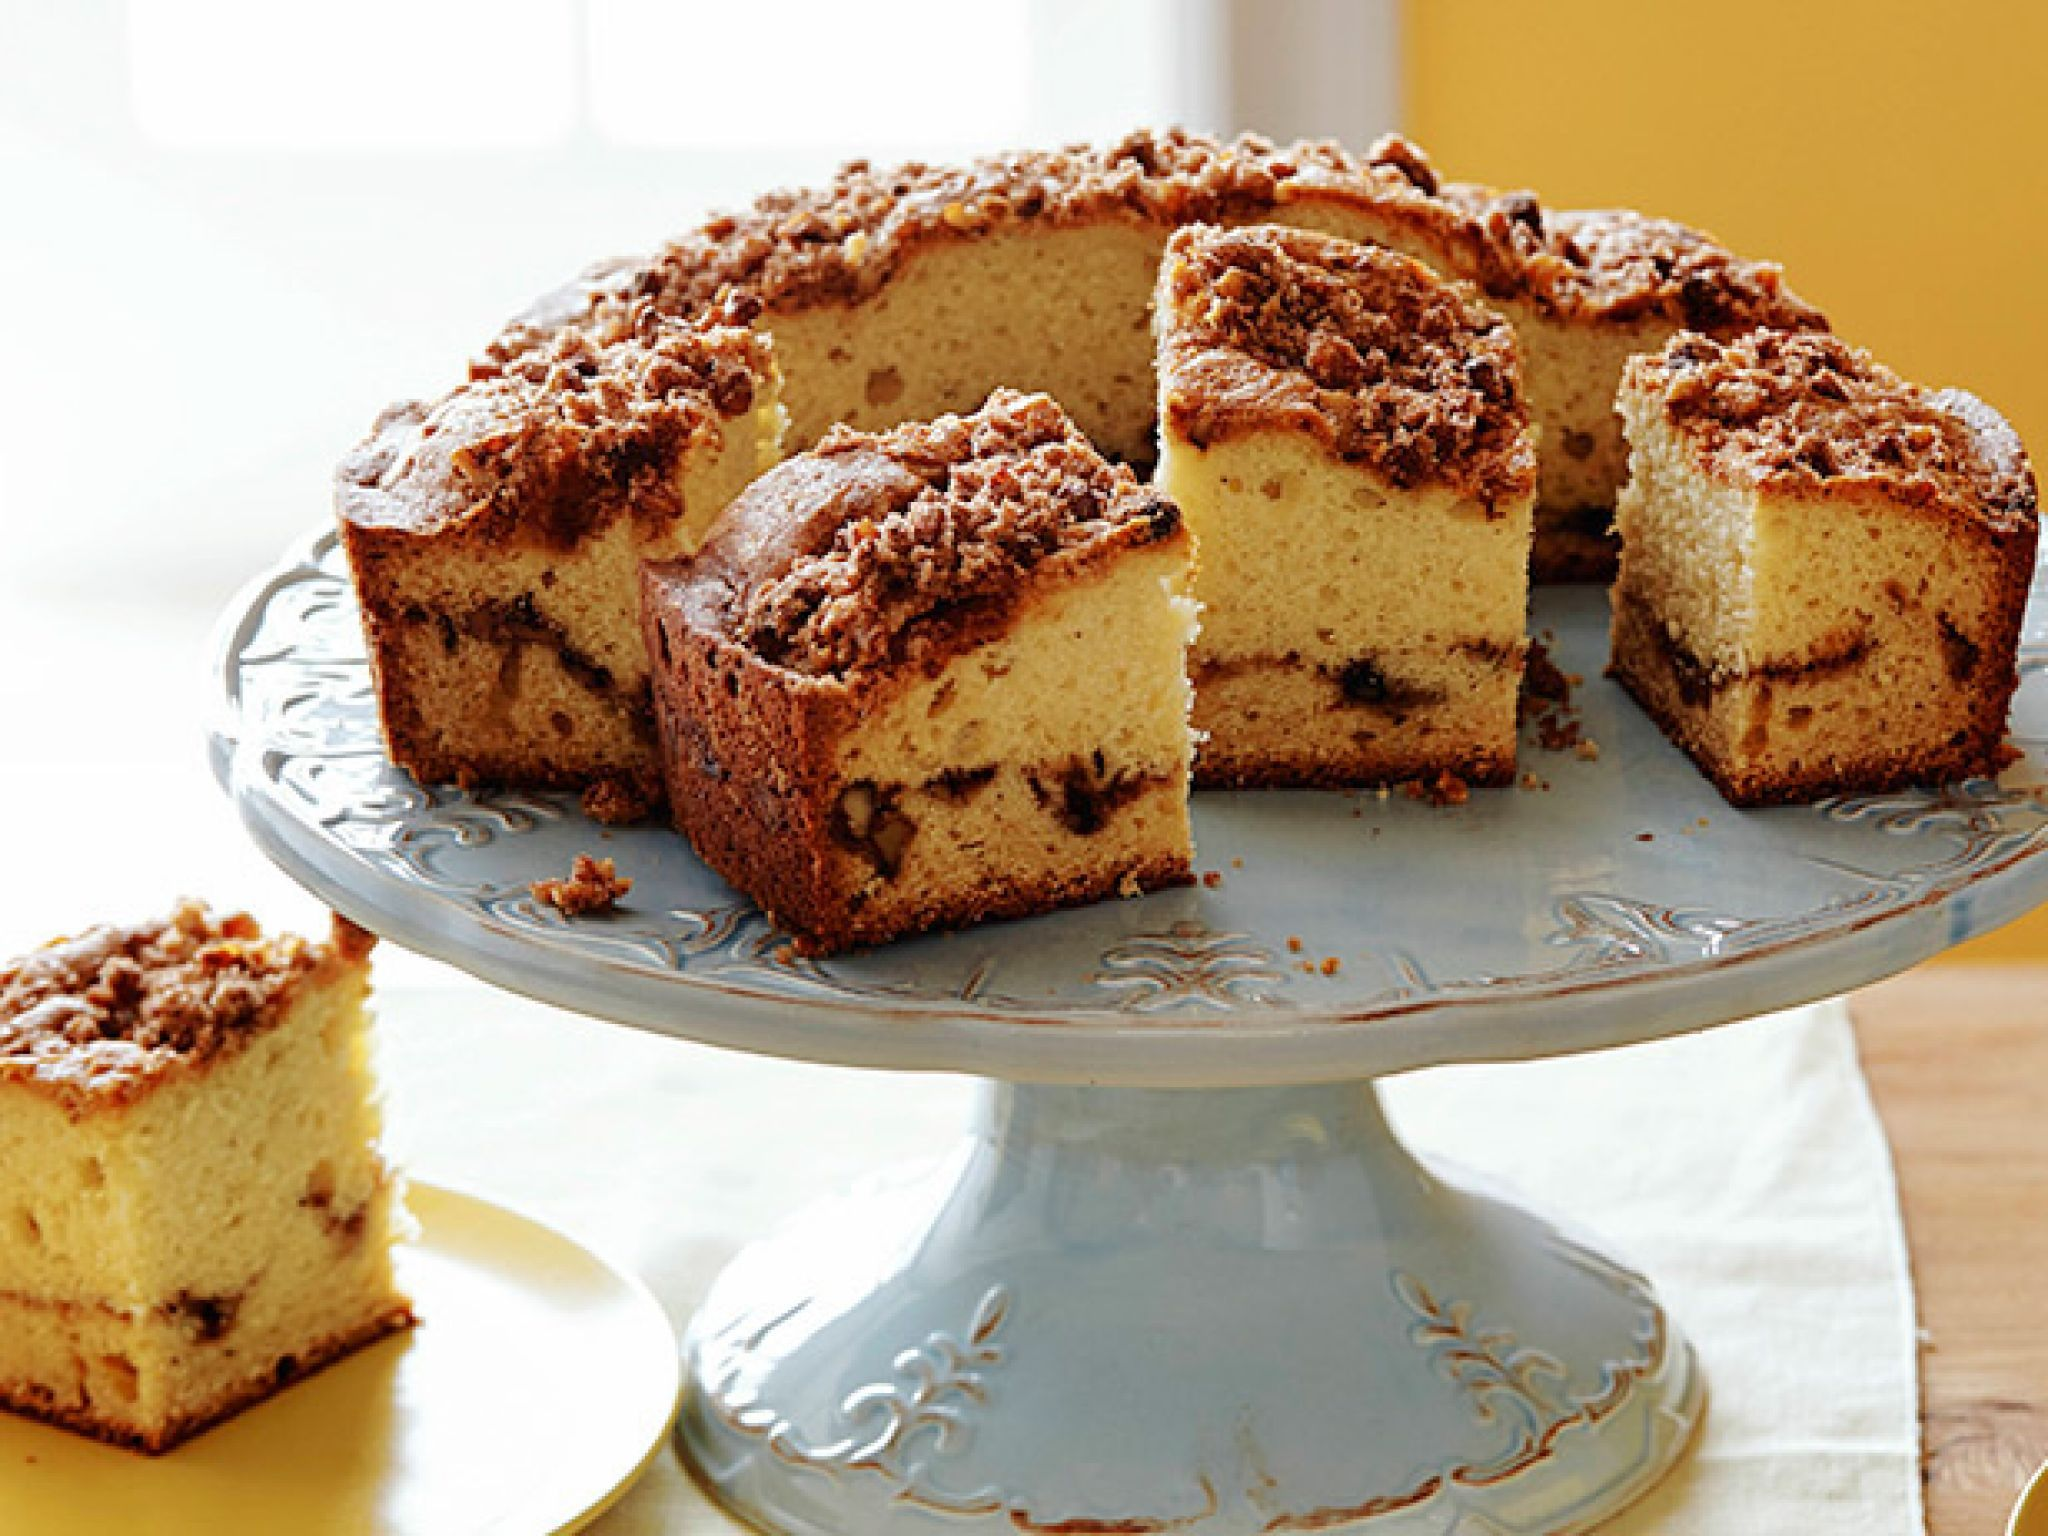 Sour Cream Coffee Cake Recipe Sour Cream Coffee Cake Food Network Recipes Coffee Cake Recipes